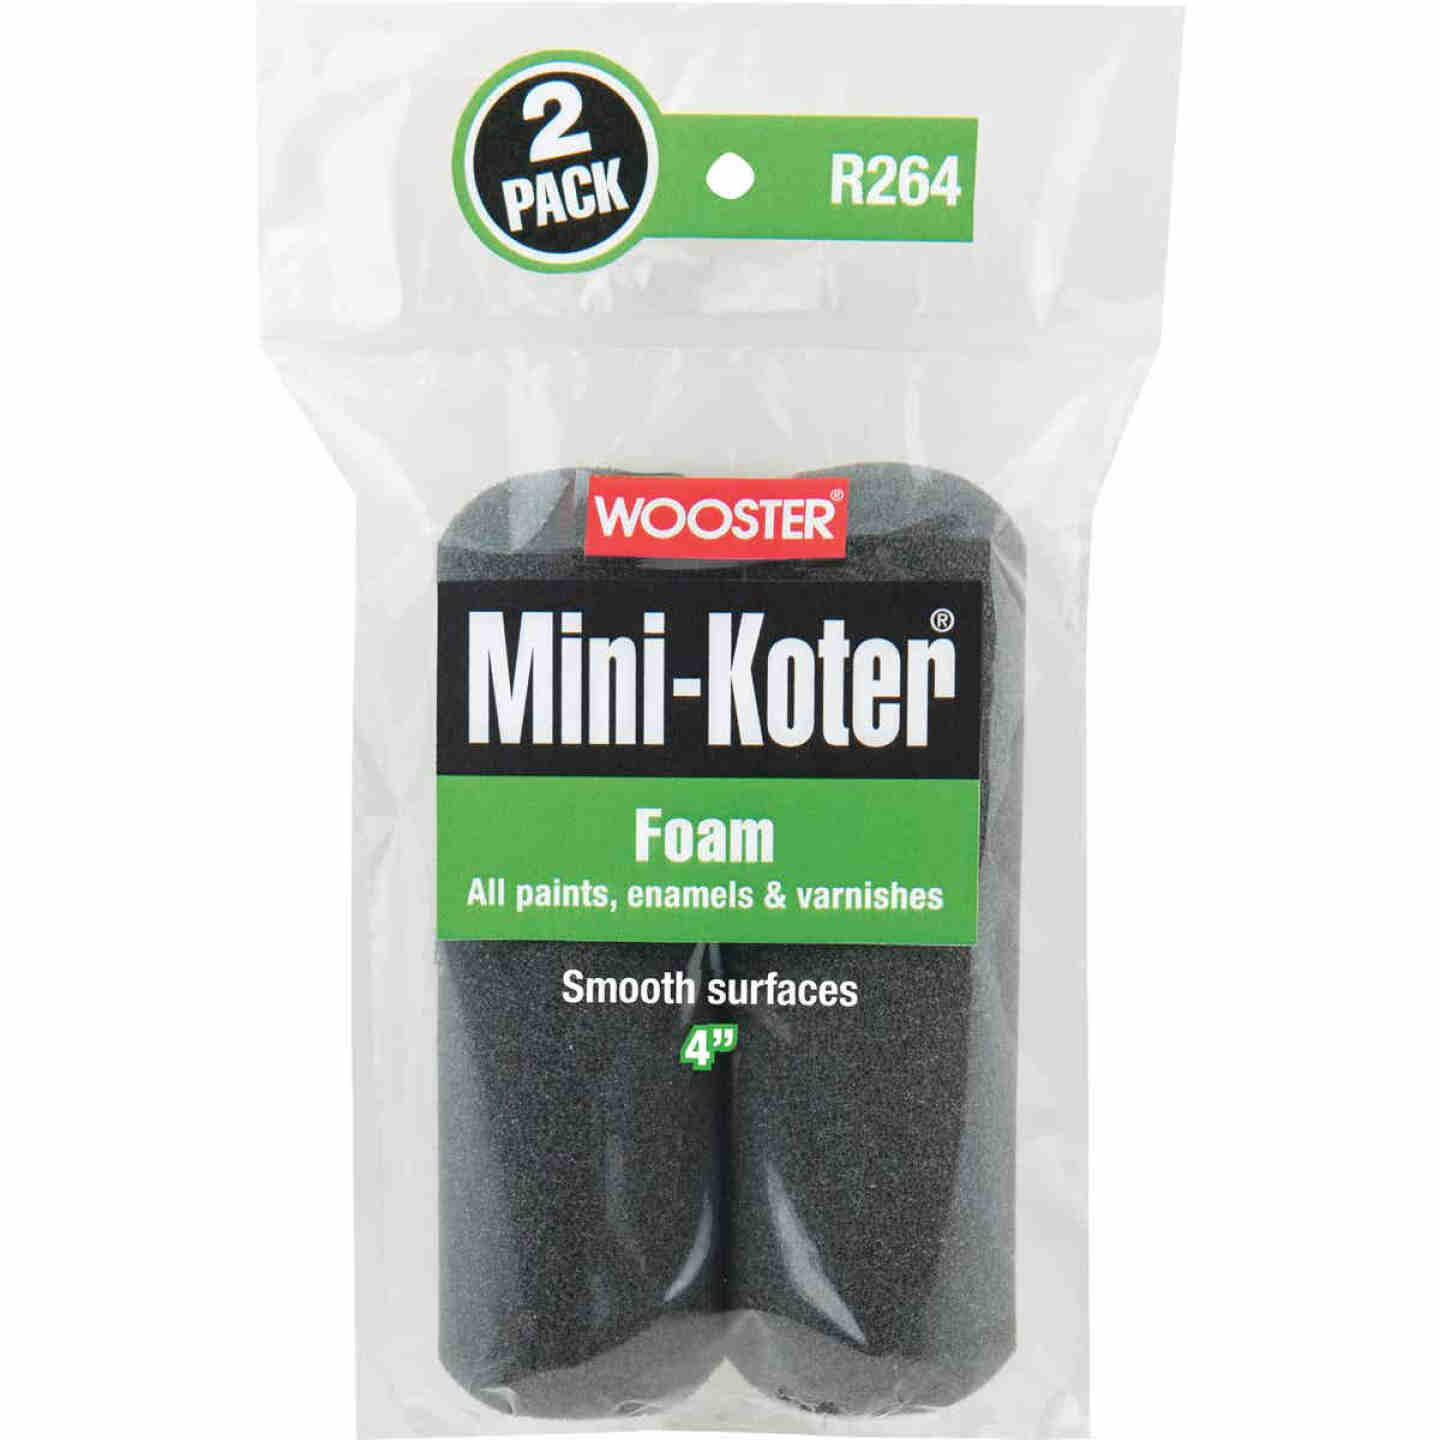 Wooster Mini-Koter 4 In. Foam Roller Cover (2 Pack) Image 1